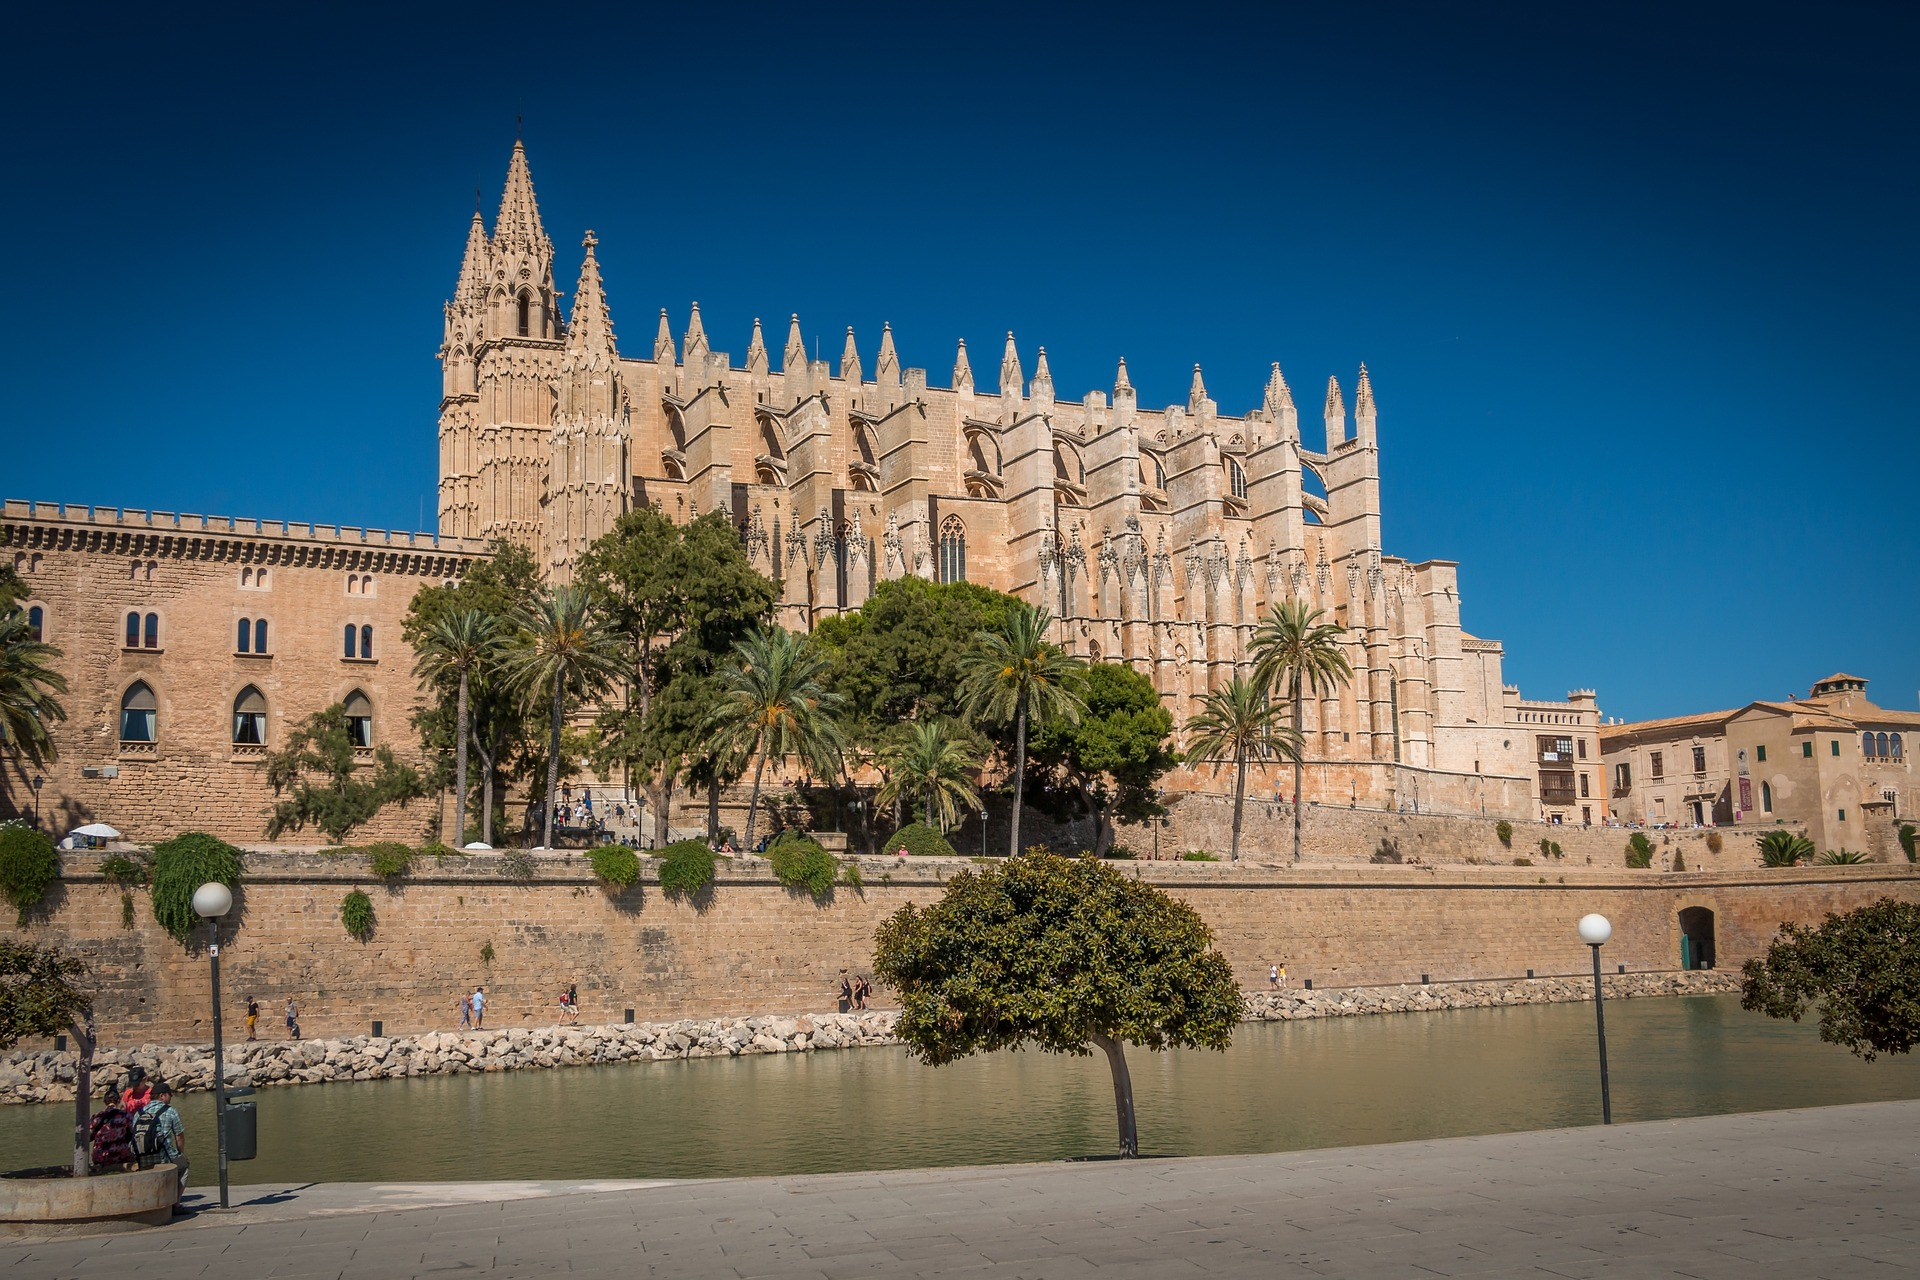 Palma de Mallorca, Spain: what is palma de mallorca known for